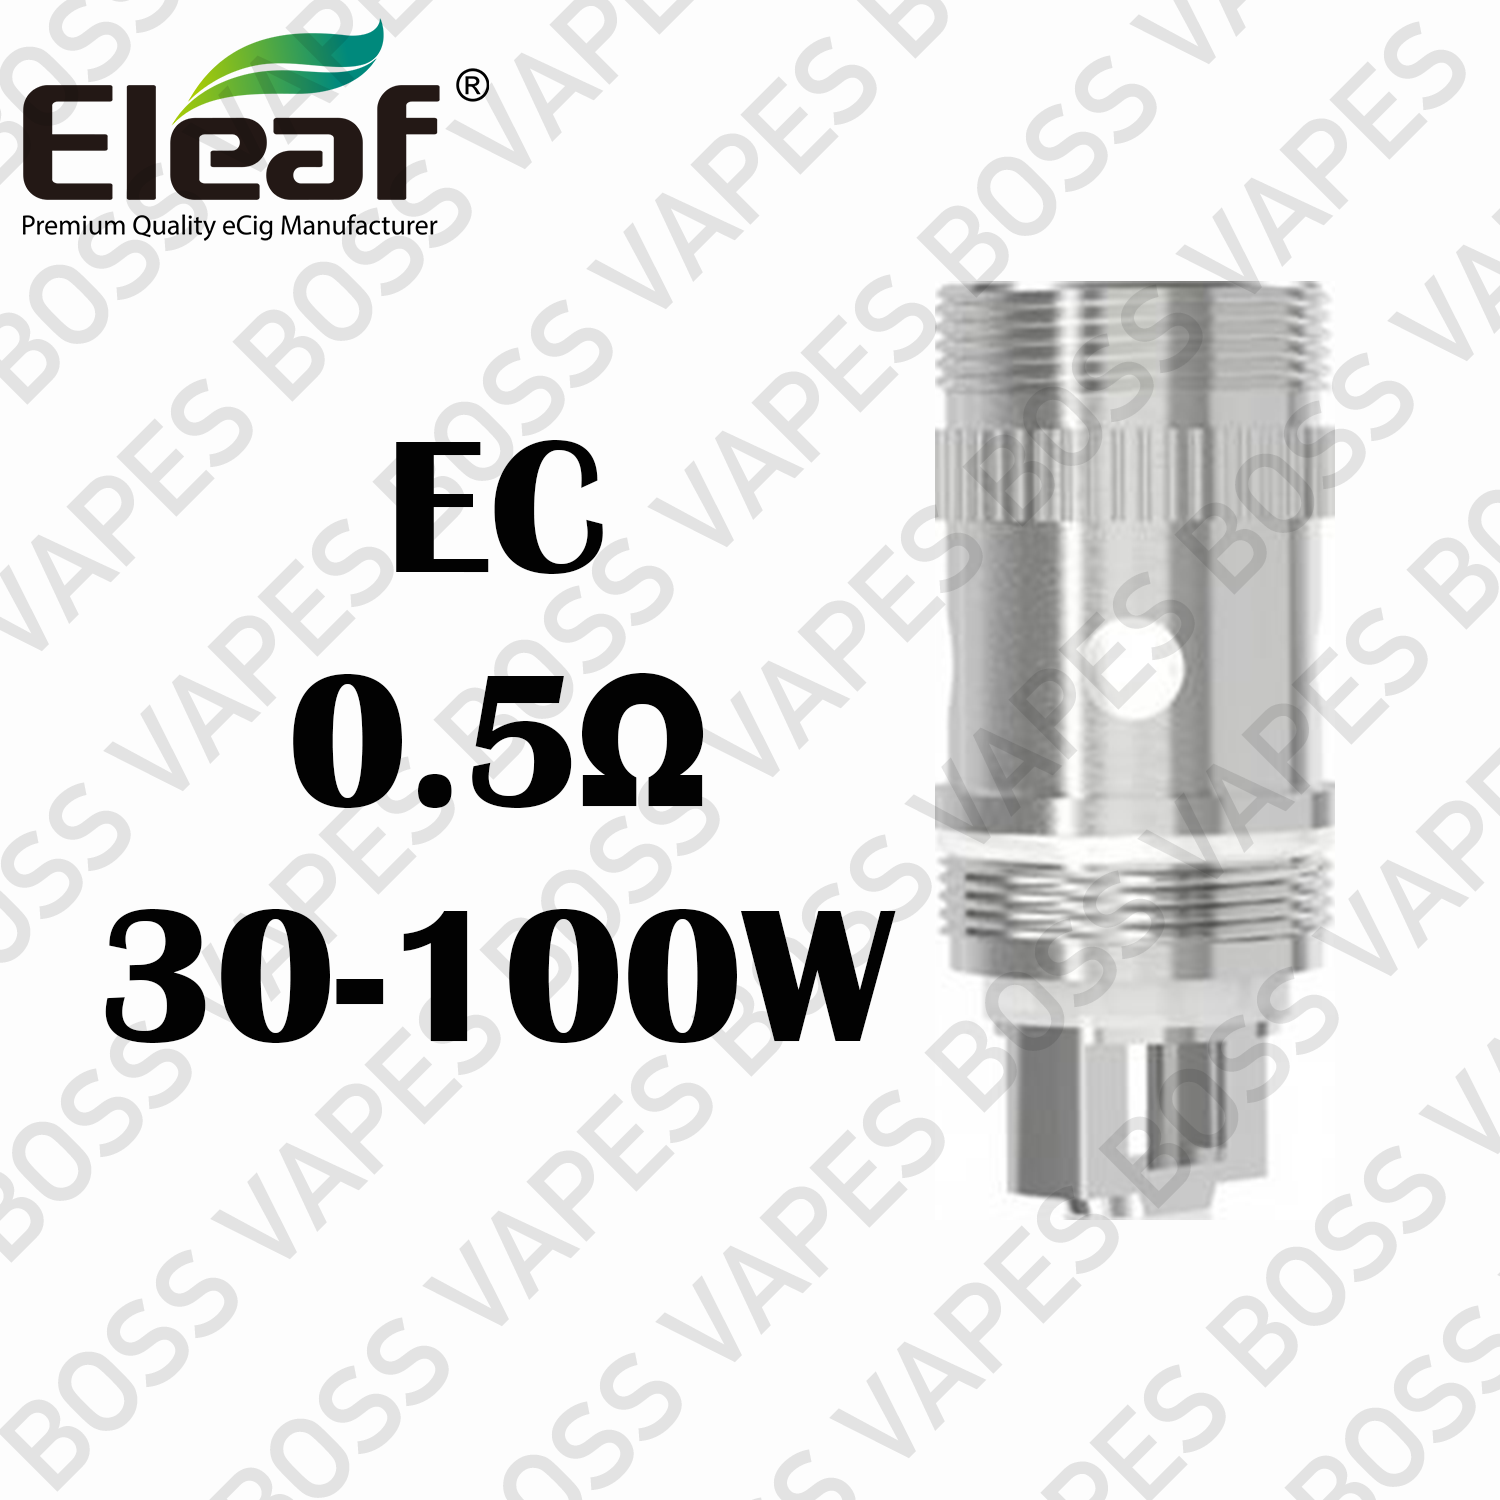 Eleaf EC Coils (iJust 2) Price Per Coil - Boss Vapes